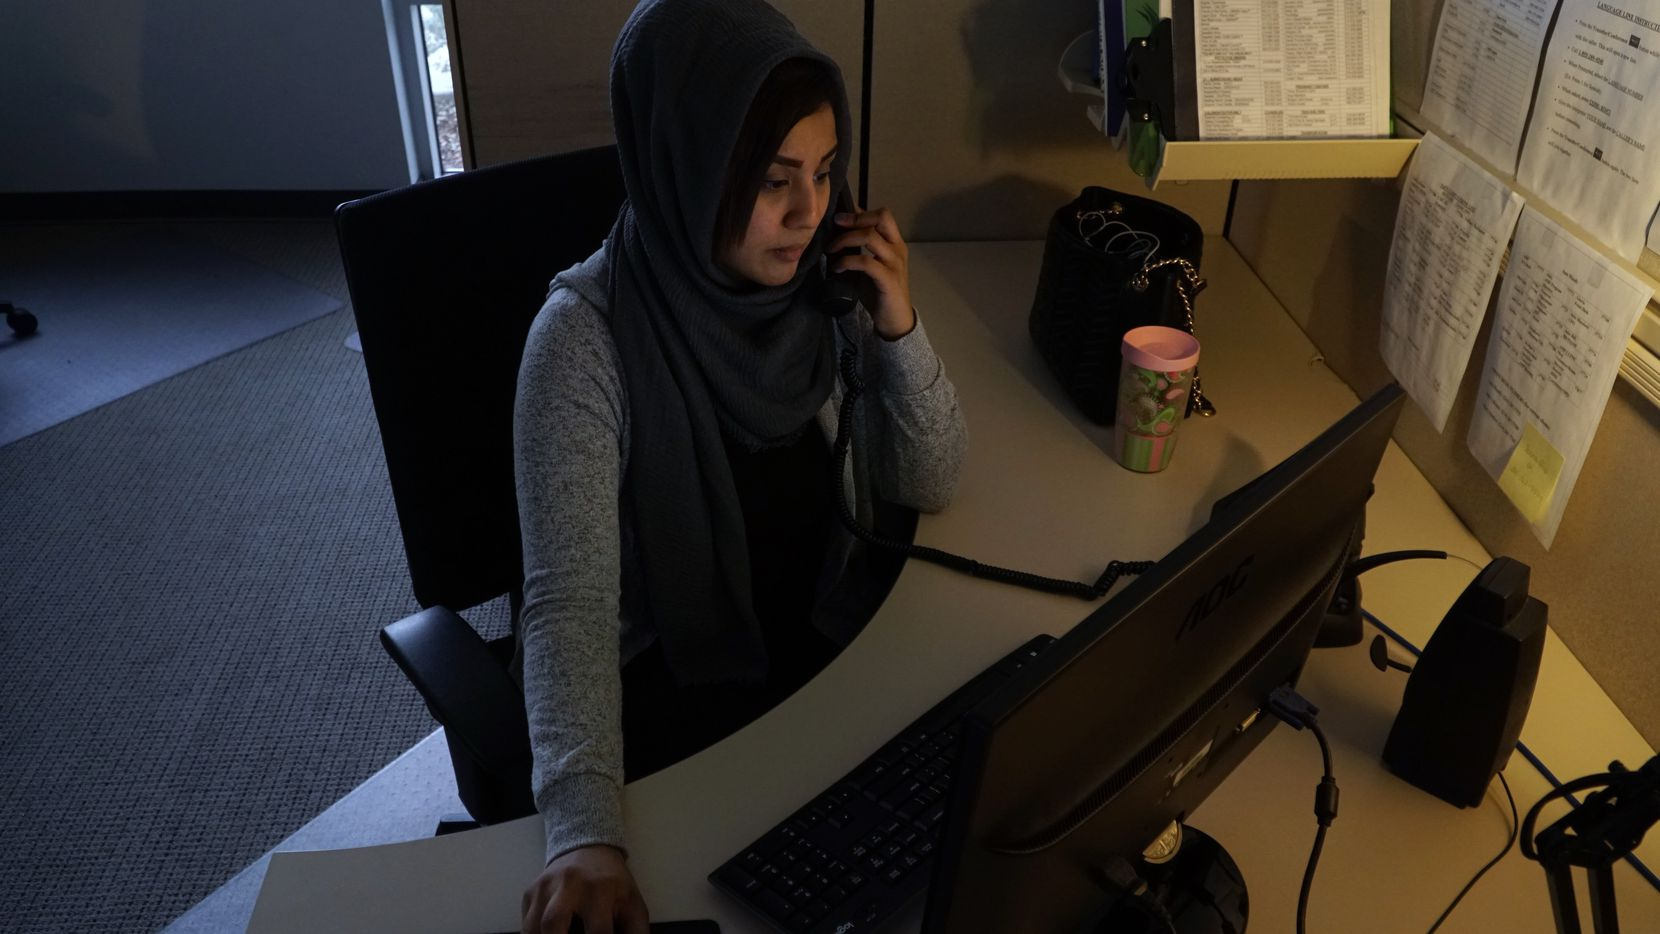 A hotline crisis counselor answers a call at the offices of The Family Place in Dallas in this November 2019 file photo.